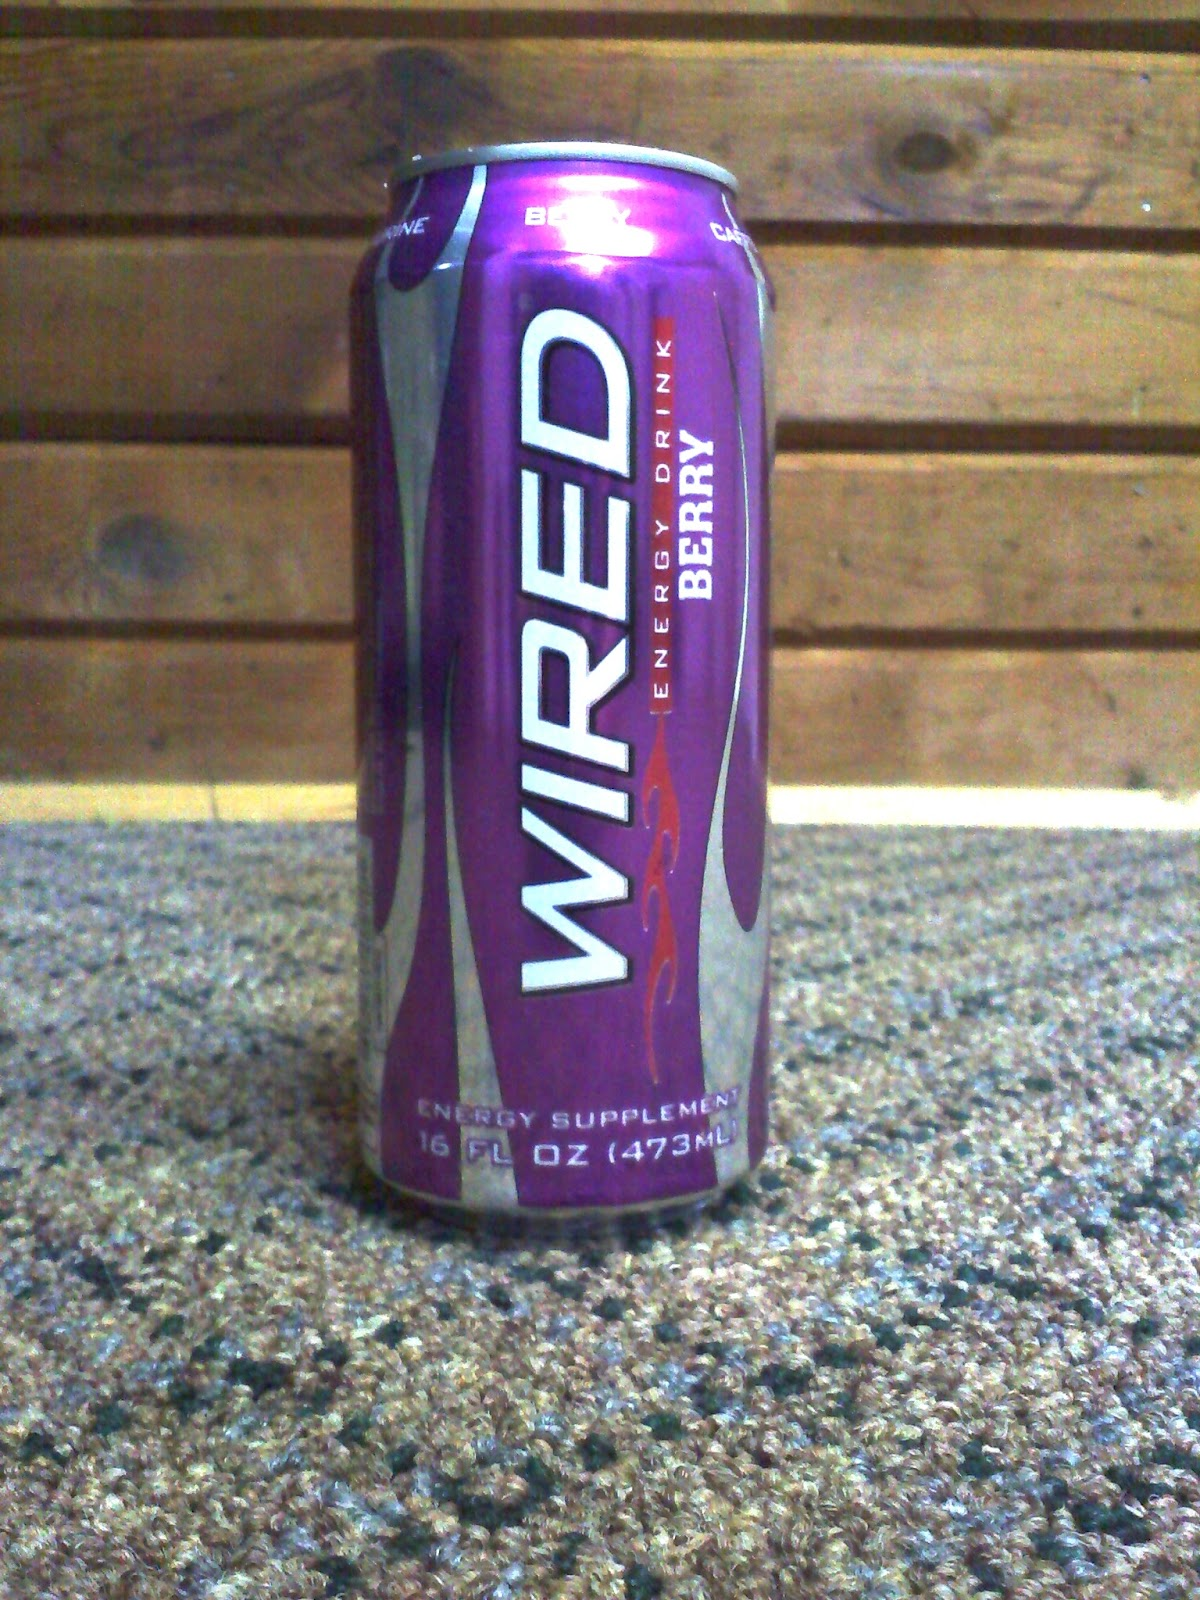 CAFFEINE!: Review for Wired Berry